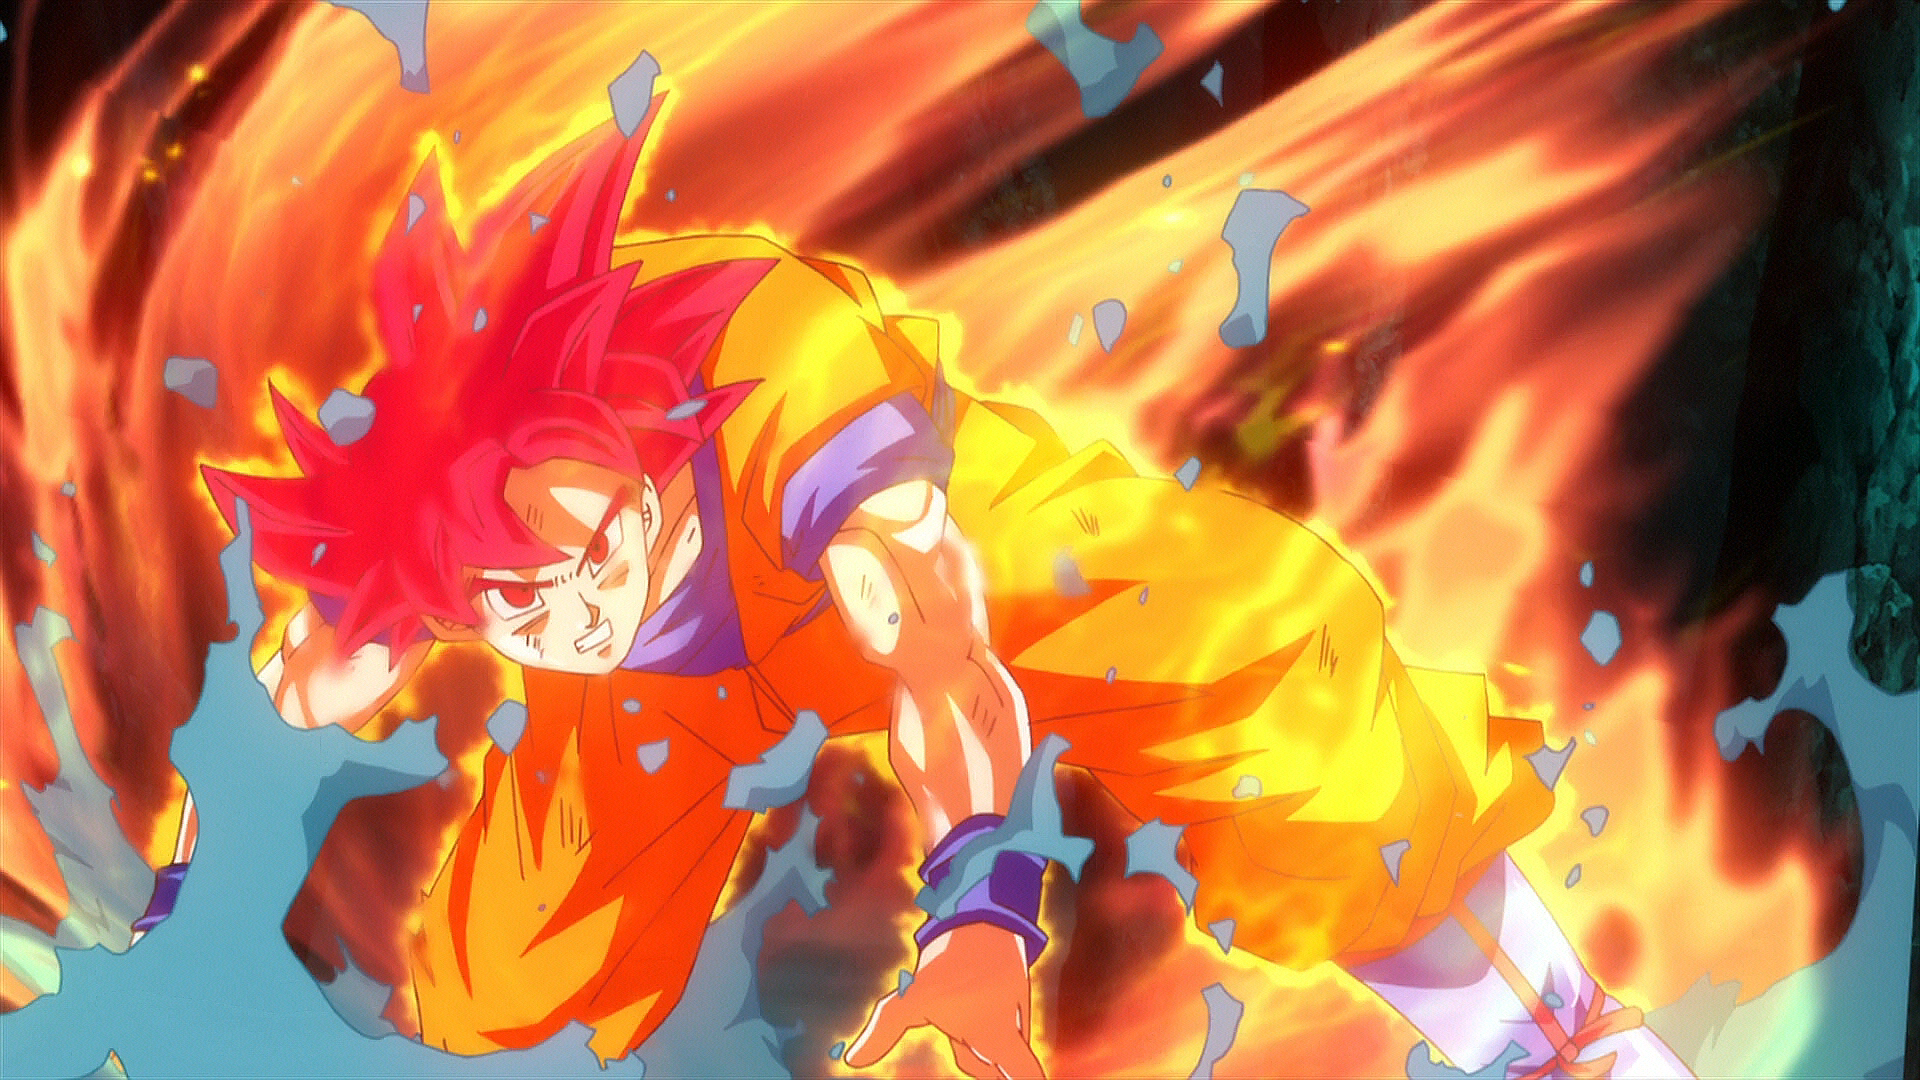 Goku Hd Wallpaper Background Image 1920x1080 Id 795797 Wallpaper Abyss